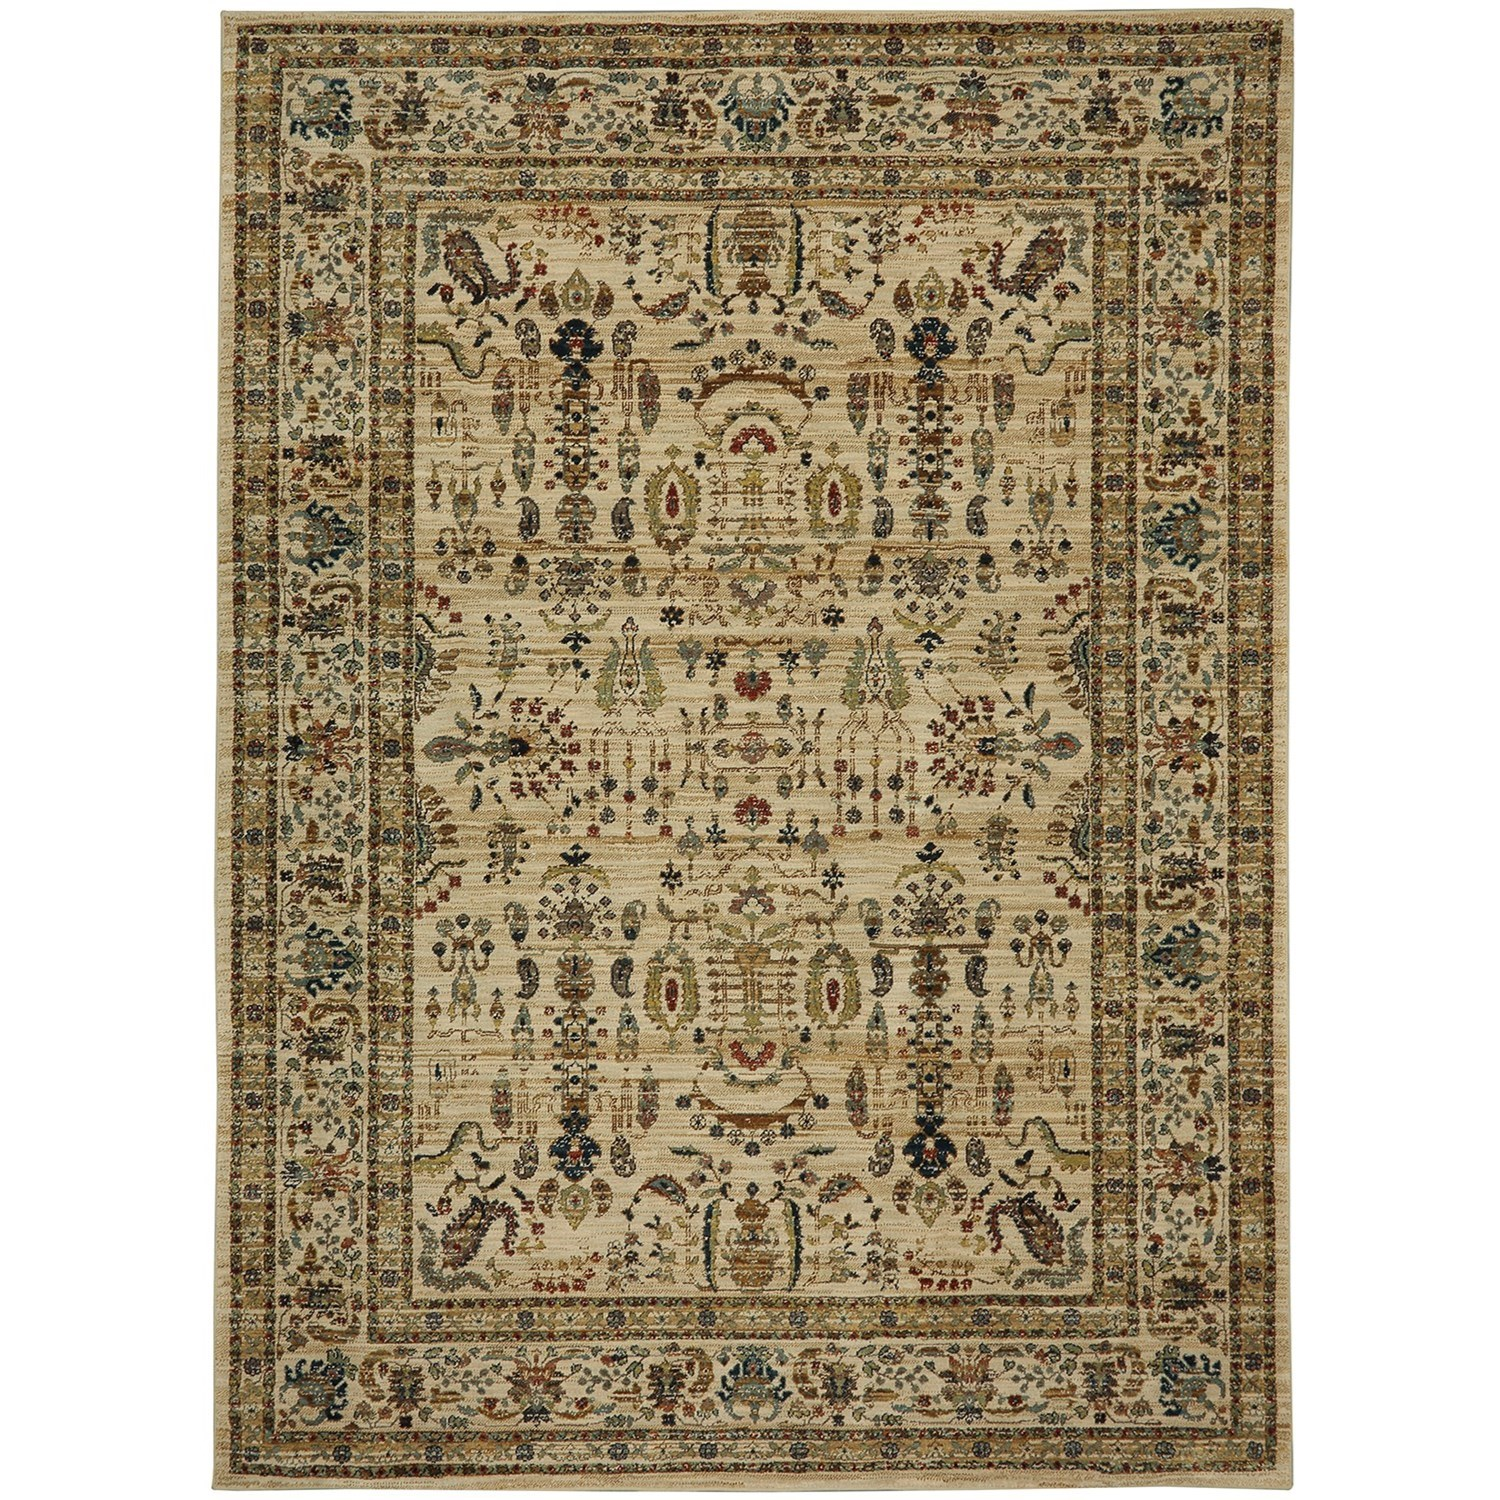 Spice Market 2'x3' Rectangle Ornamental Area Rug by Karastan Rugs at Darvin Furniture